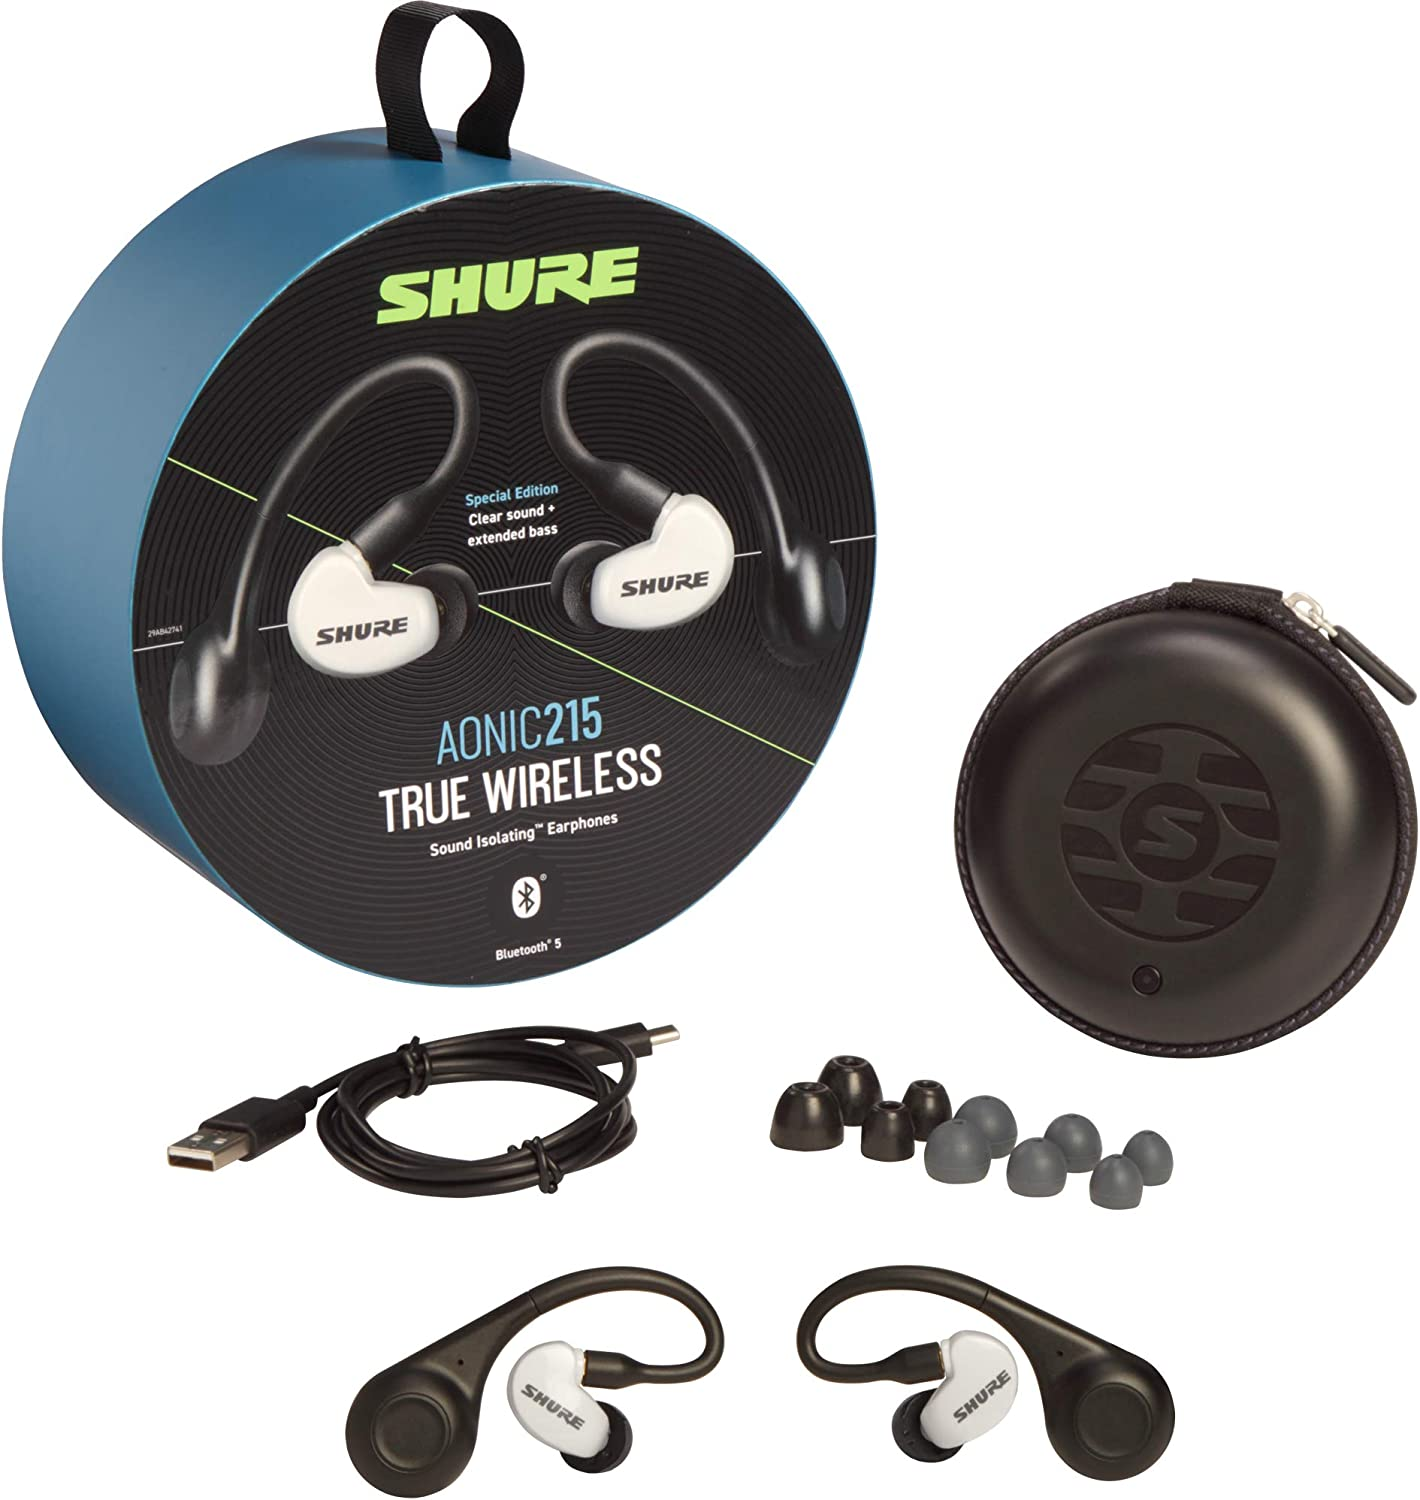 Shure-Aonic-215-True-Wireless-Sound-Isolating